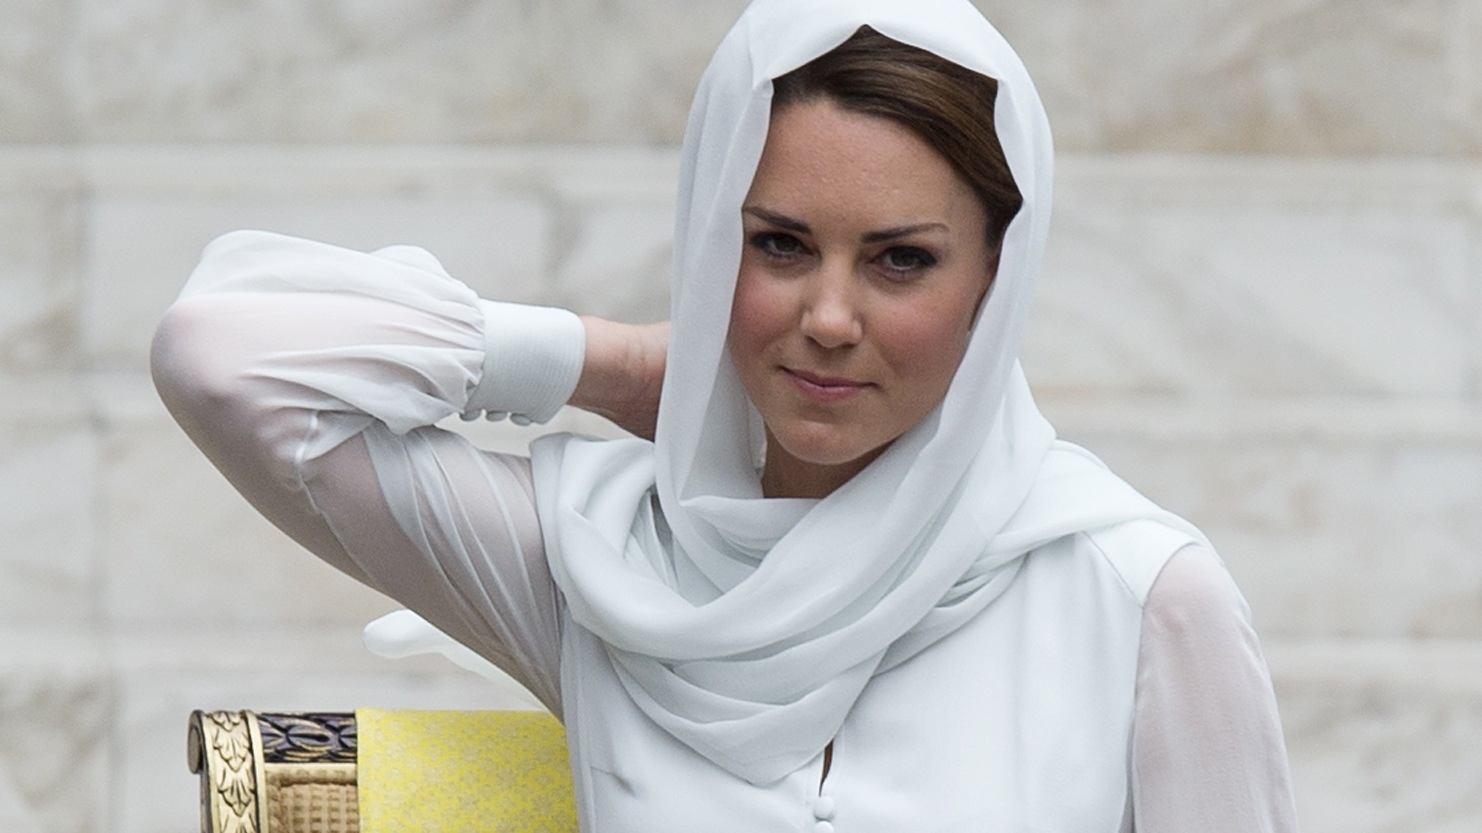 Protecting Kate Middleton's modesty is an international affair.